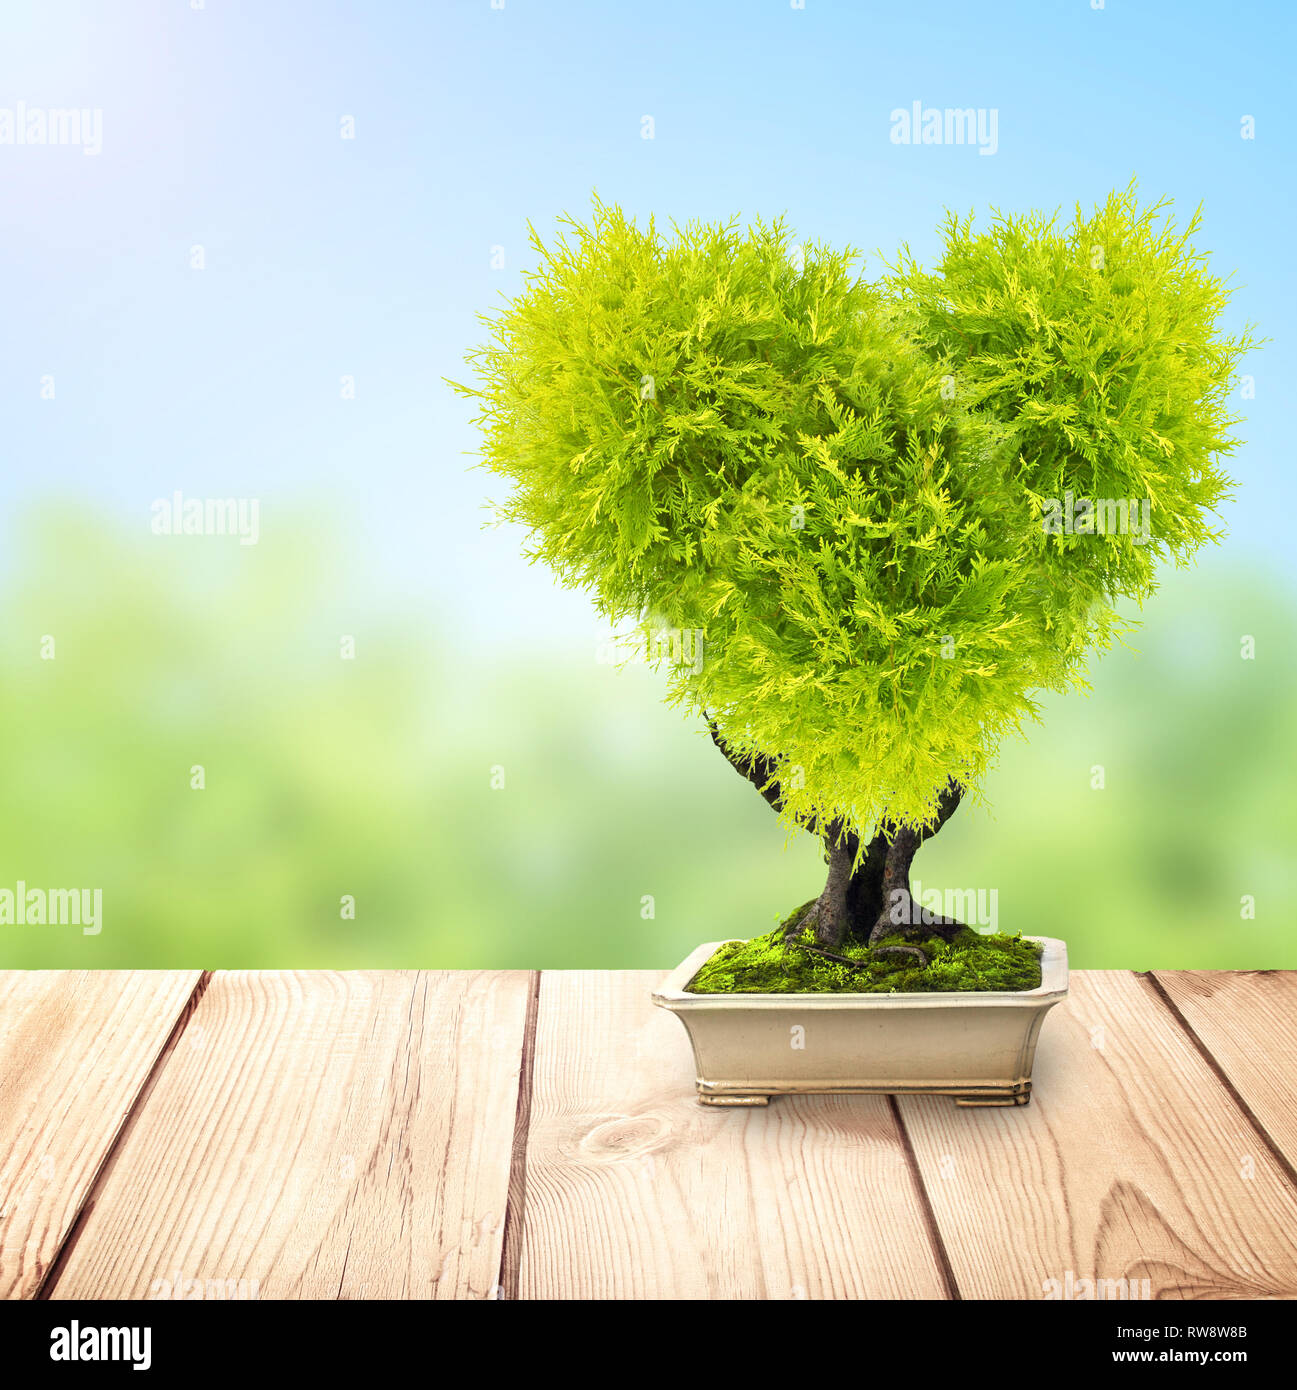 Eco Concept Heart Shaped Tree In Flower Pot On Old Wooden Deck On